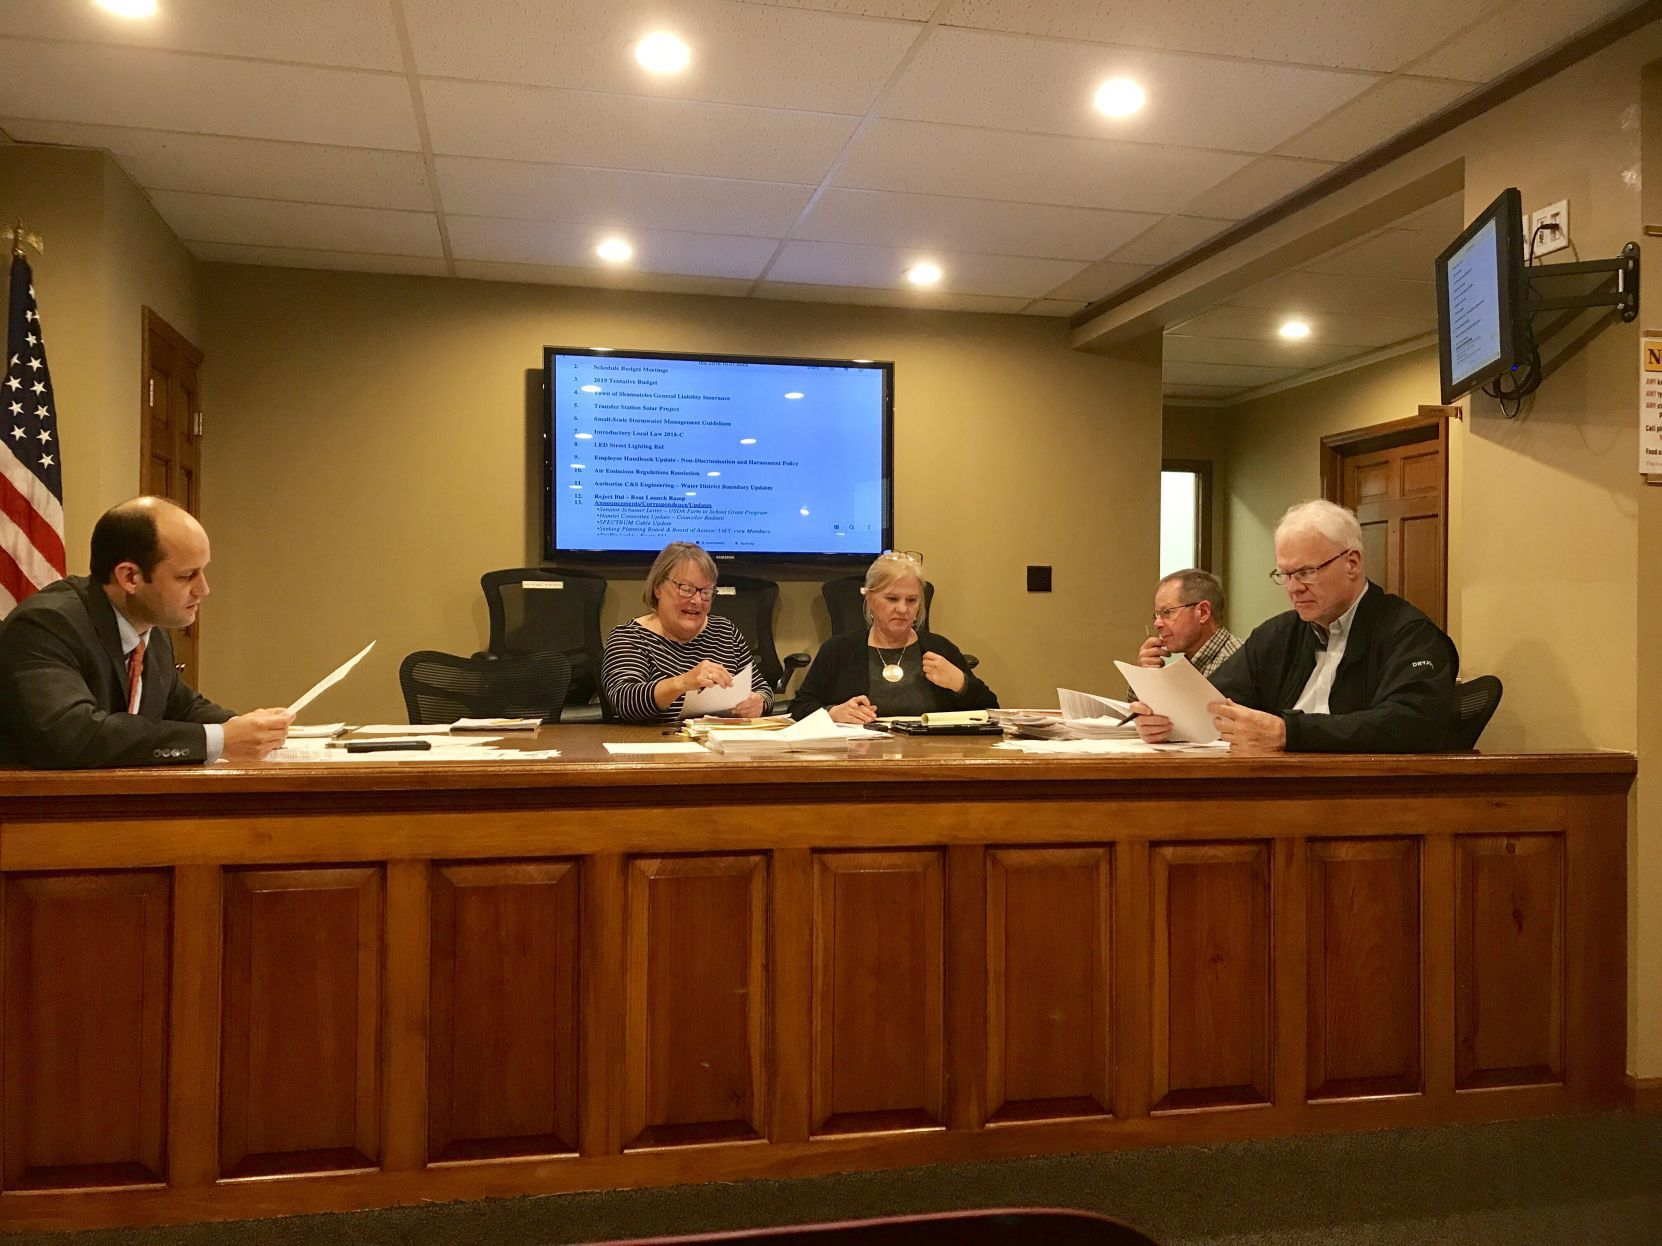 Town of Skaneateles approves 2019 budget, lake monitoring funds increased